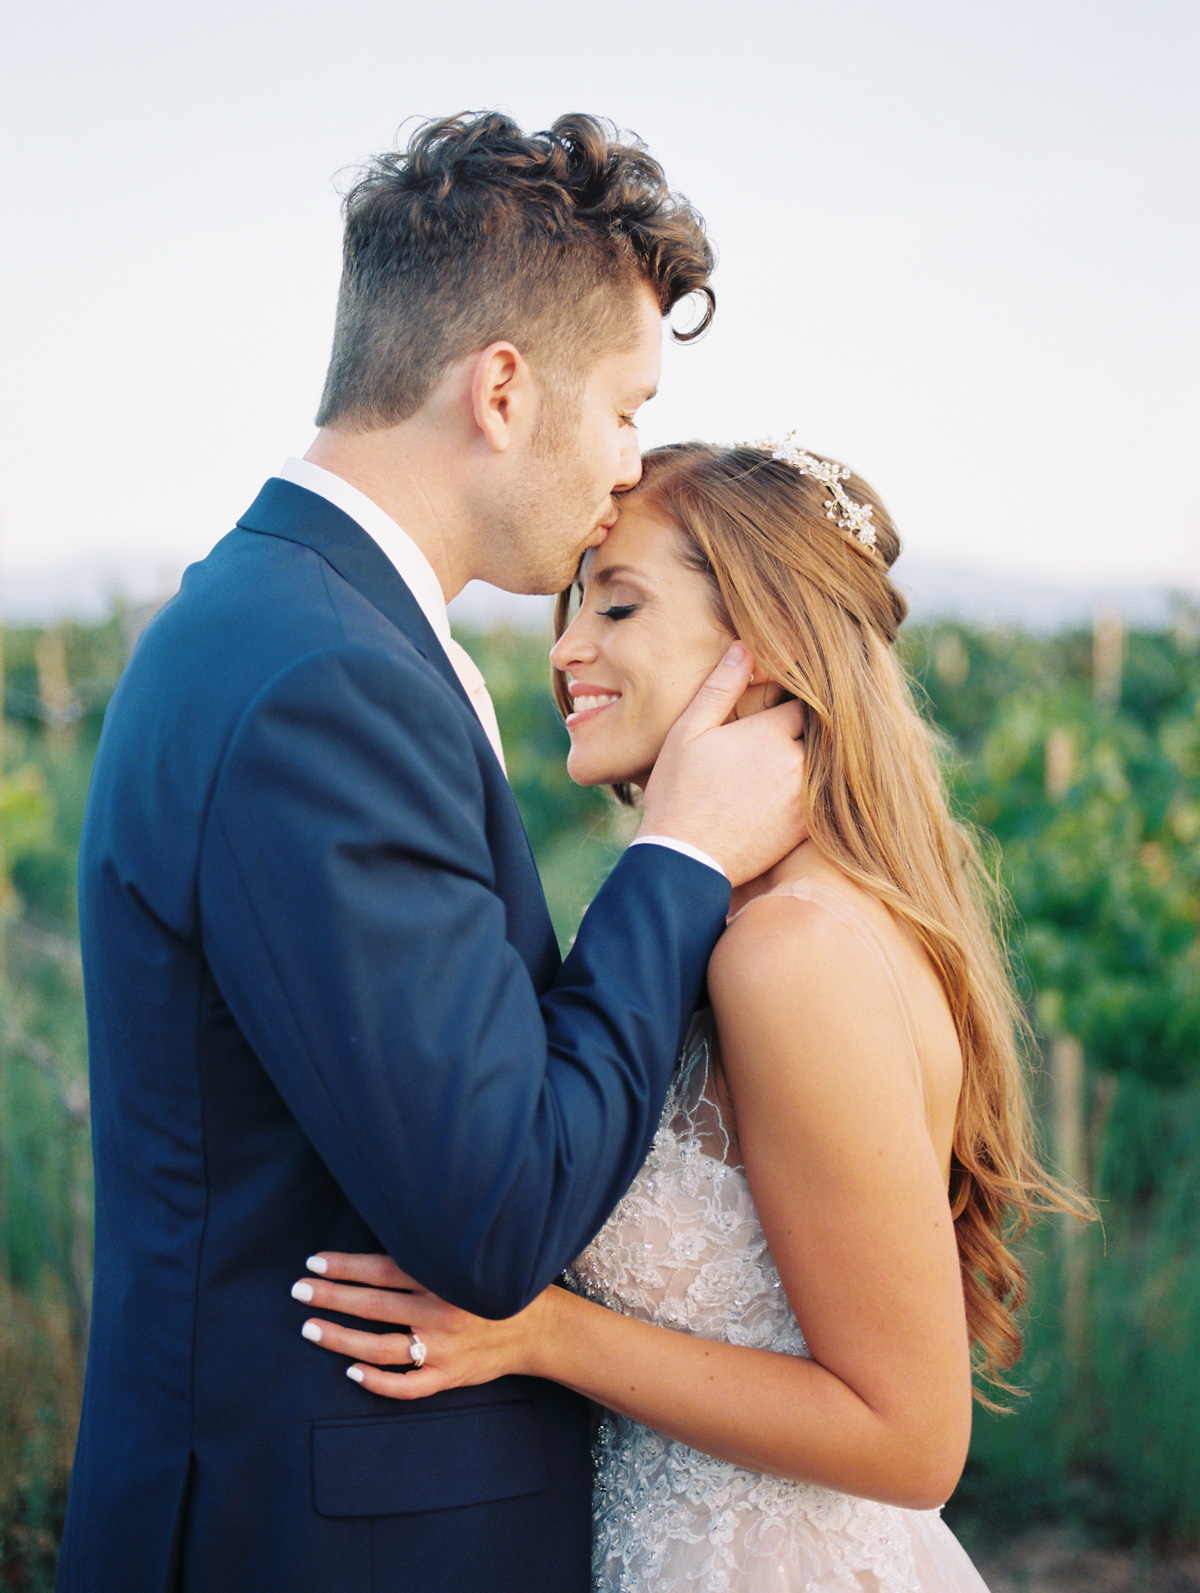 Groom kissing bride on the head, redhead bride smiling  | Harrison & Jocelyne's gorgeous Temecula wedding day at Wiens Family Cellars captured by Temecula wedding photographers Betsy & John